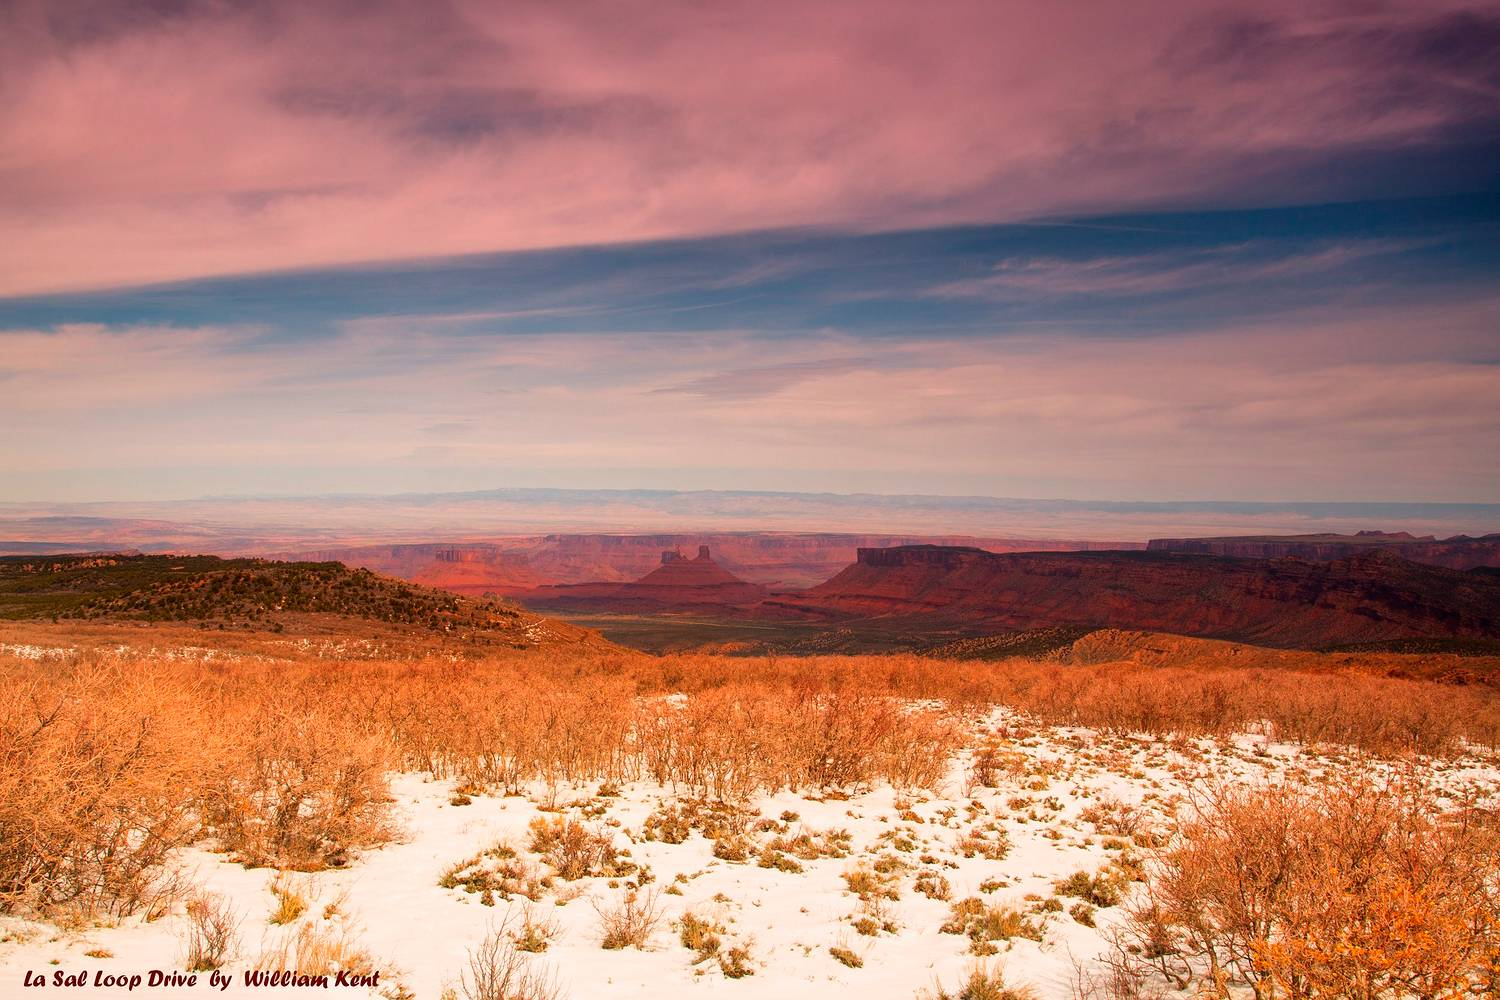 La Sal Loop 1 by William Kent